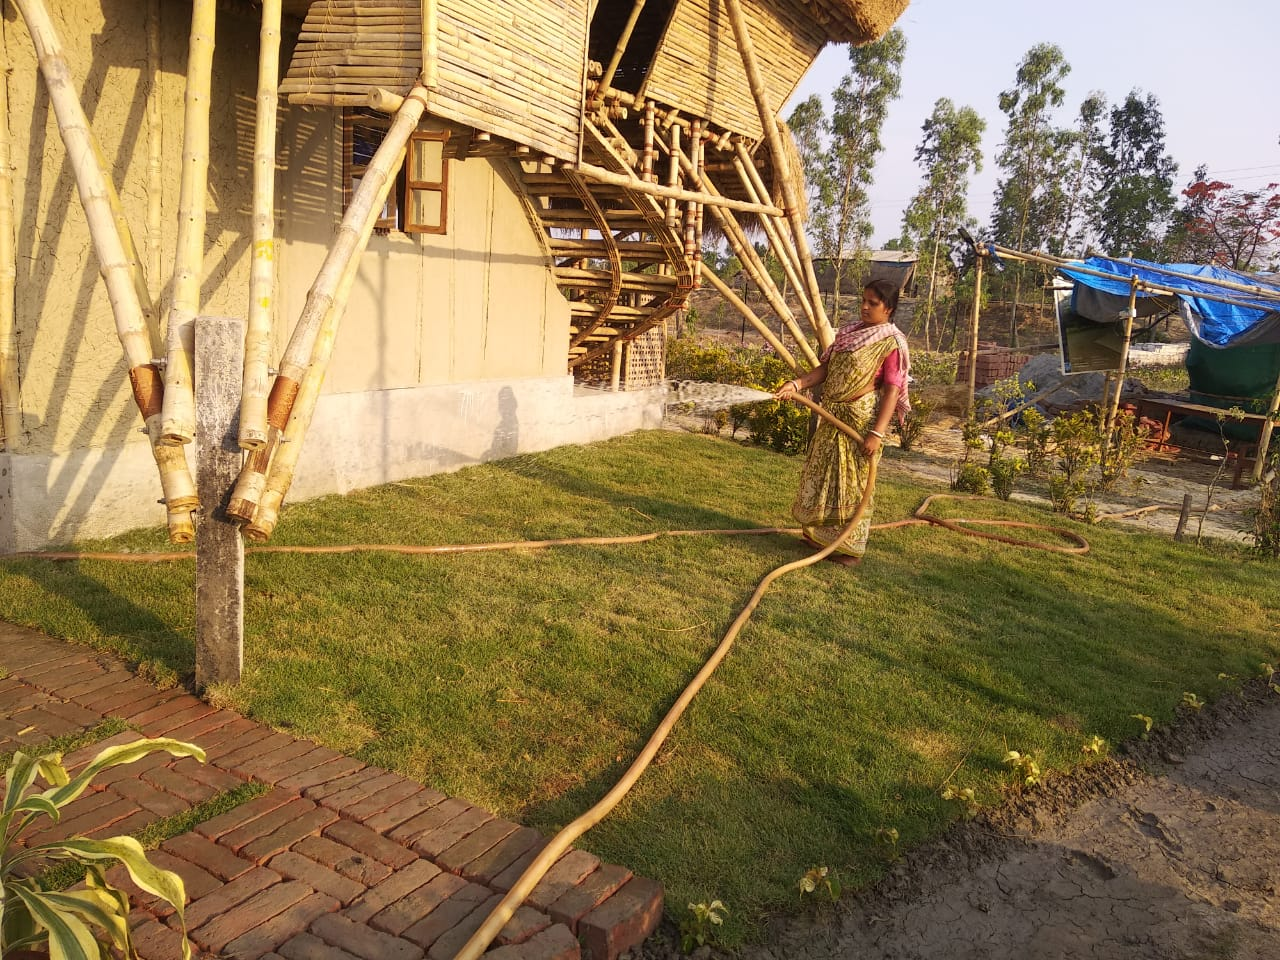 Watering Work Is Going On At Mukti Library Lawn And Model Ho...